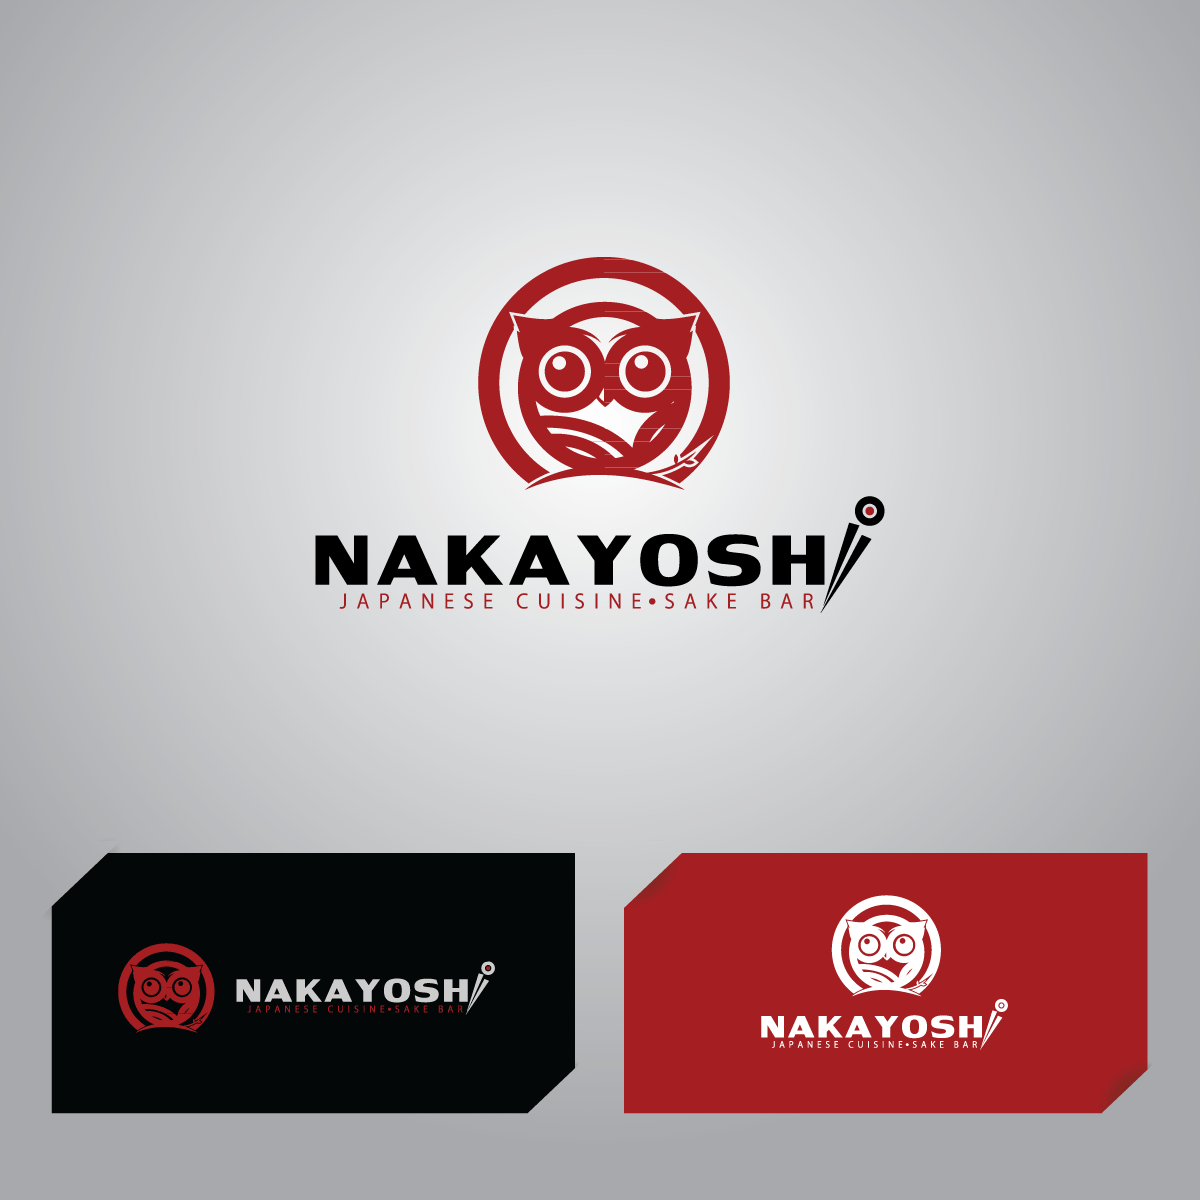 Logo Design by Crismar Cabinian - Entry No. 61 in the Logo Design Contest Imaginative Logo Design for NAKAYOSHI.